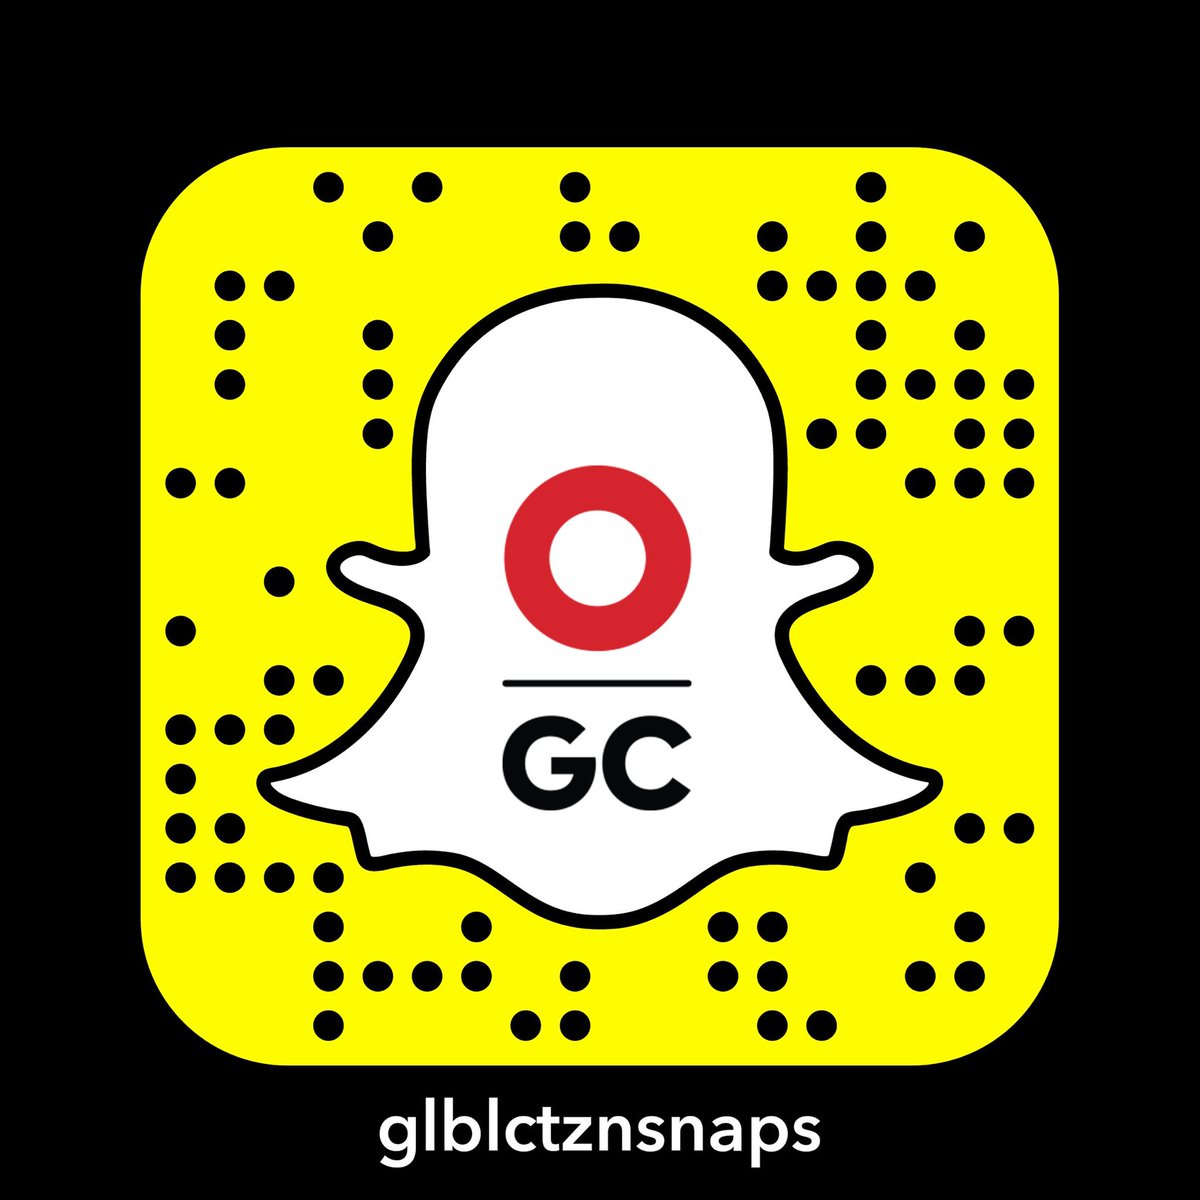 Global citizen on twitter on snapchat check out todays live check out todays live story covering the behind the scenes action at global citizen festival gcfestival httpstai9rrrk3xa buycottarizona Choice Image